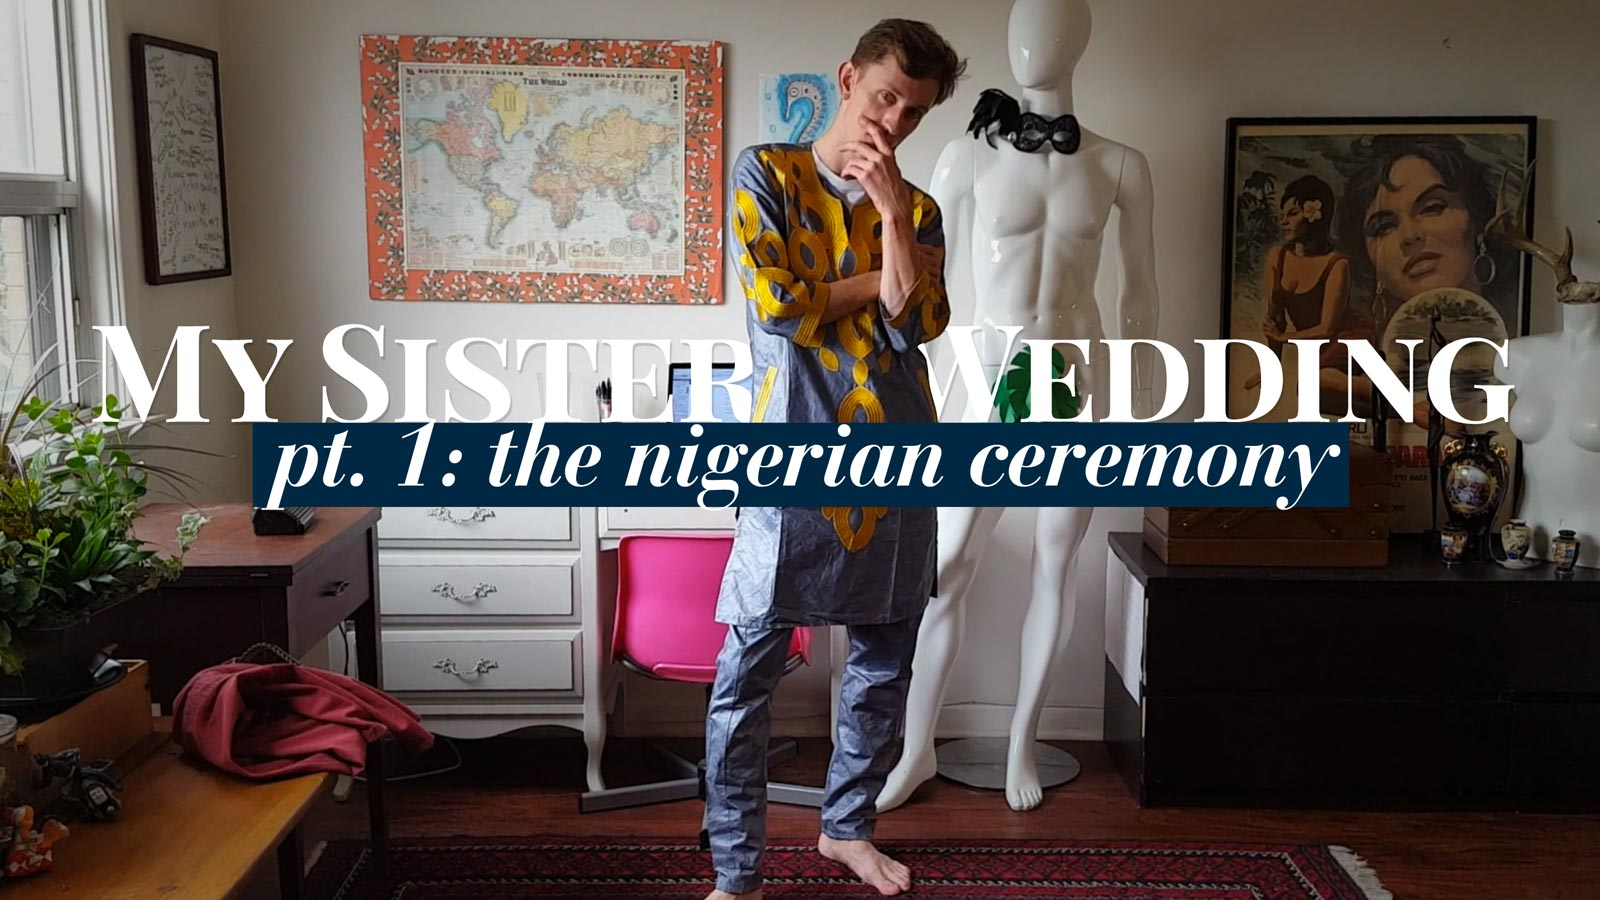 My Sister's Wedding, Pt 1: The Nigerian Ceremony